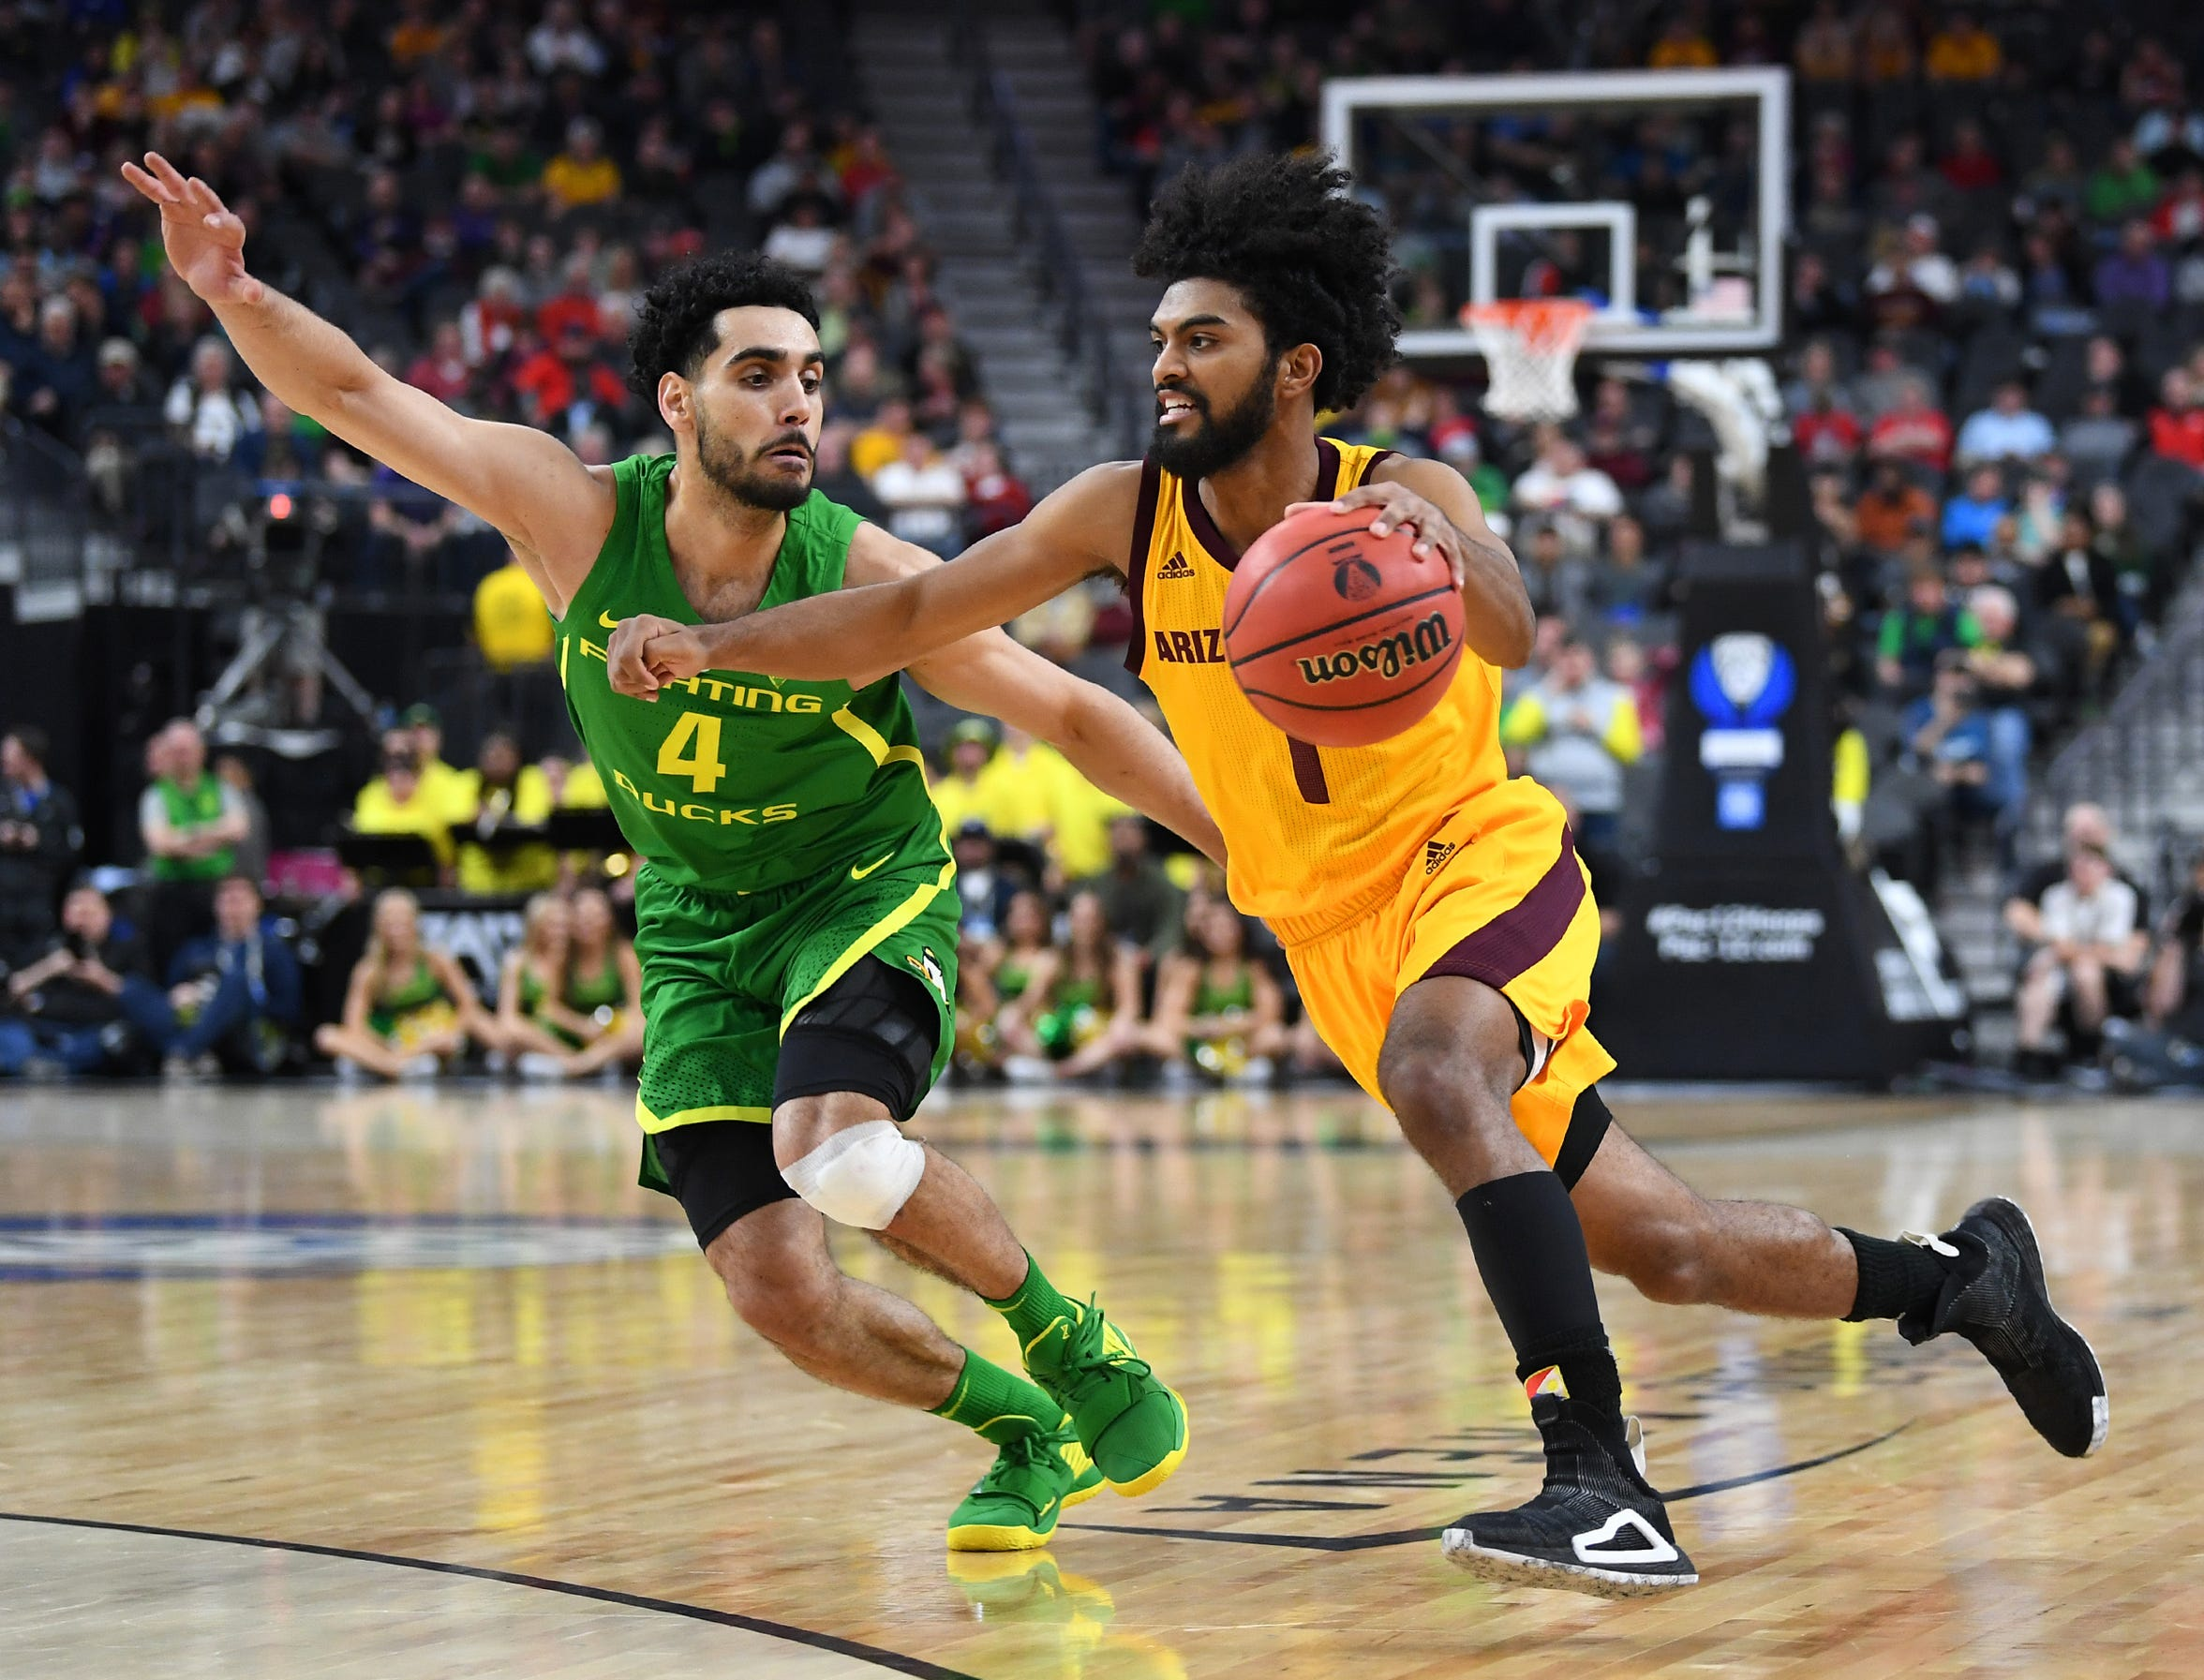 Mar 15, 2019; Las Vegas, NV, United States; Arizona State Sun Devils guard Remy Martin (1) dribbles against Oregon Ducks guard Ehab Amin (4) during the second half of a Pac-12 conference tournament game at T-Mobile Arena. Mandatory Credit: Stephen R. Sylvanie-USA TODAY Sports